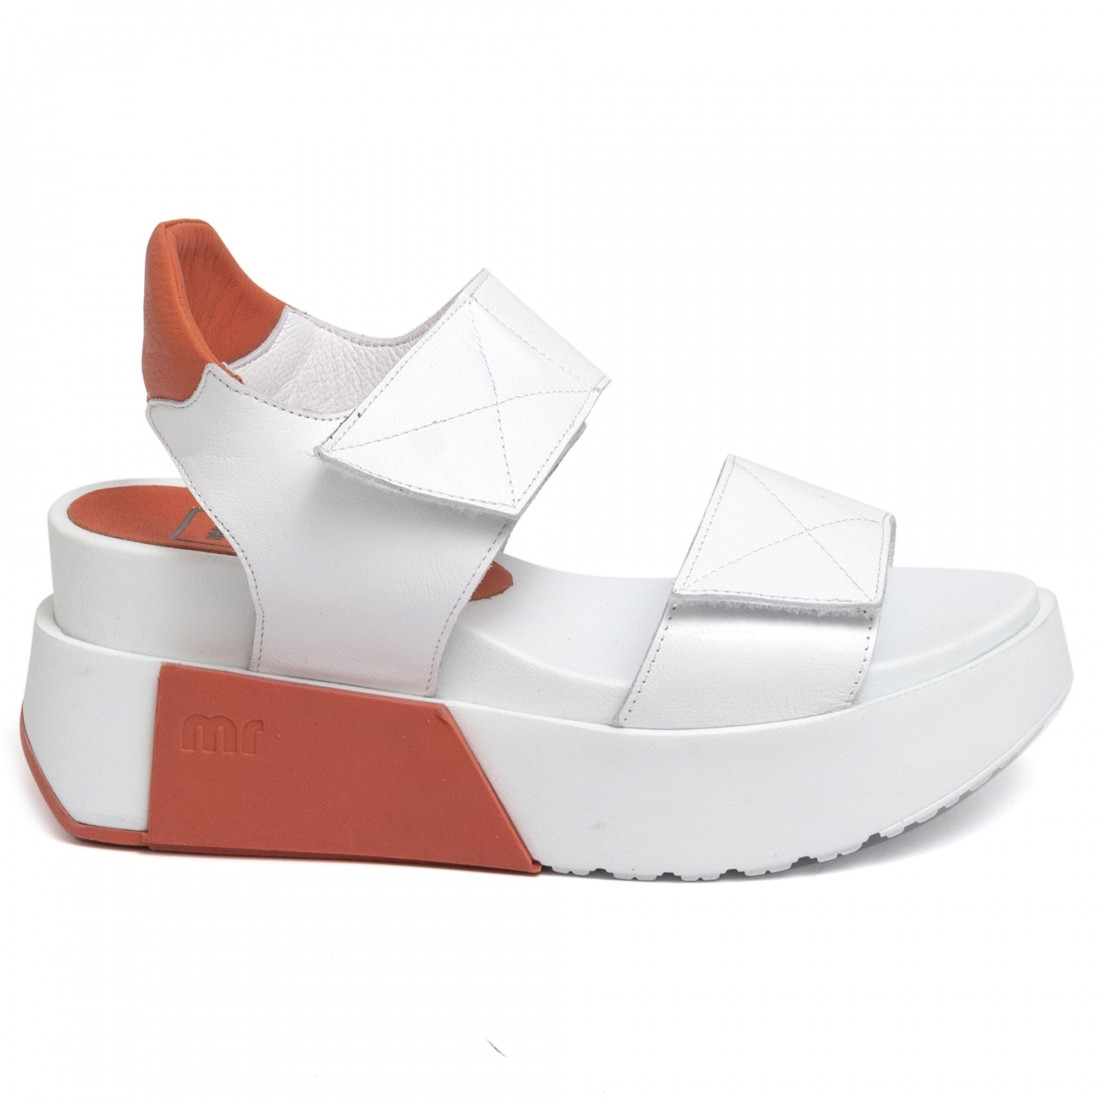 sandals woman why more 6199117 106 7360